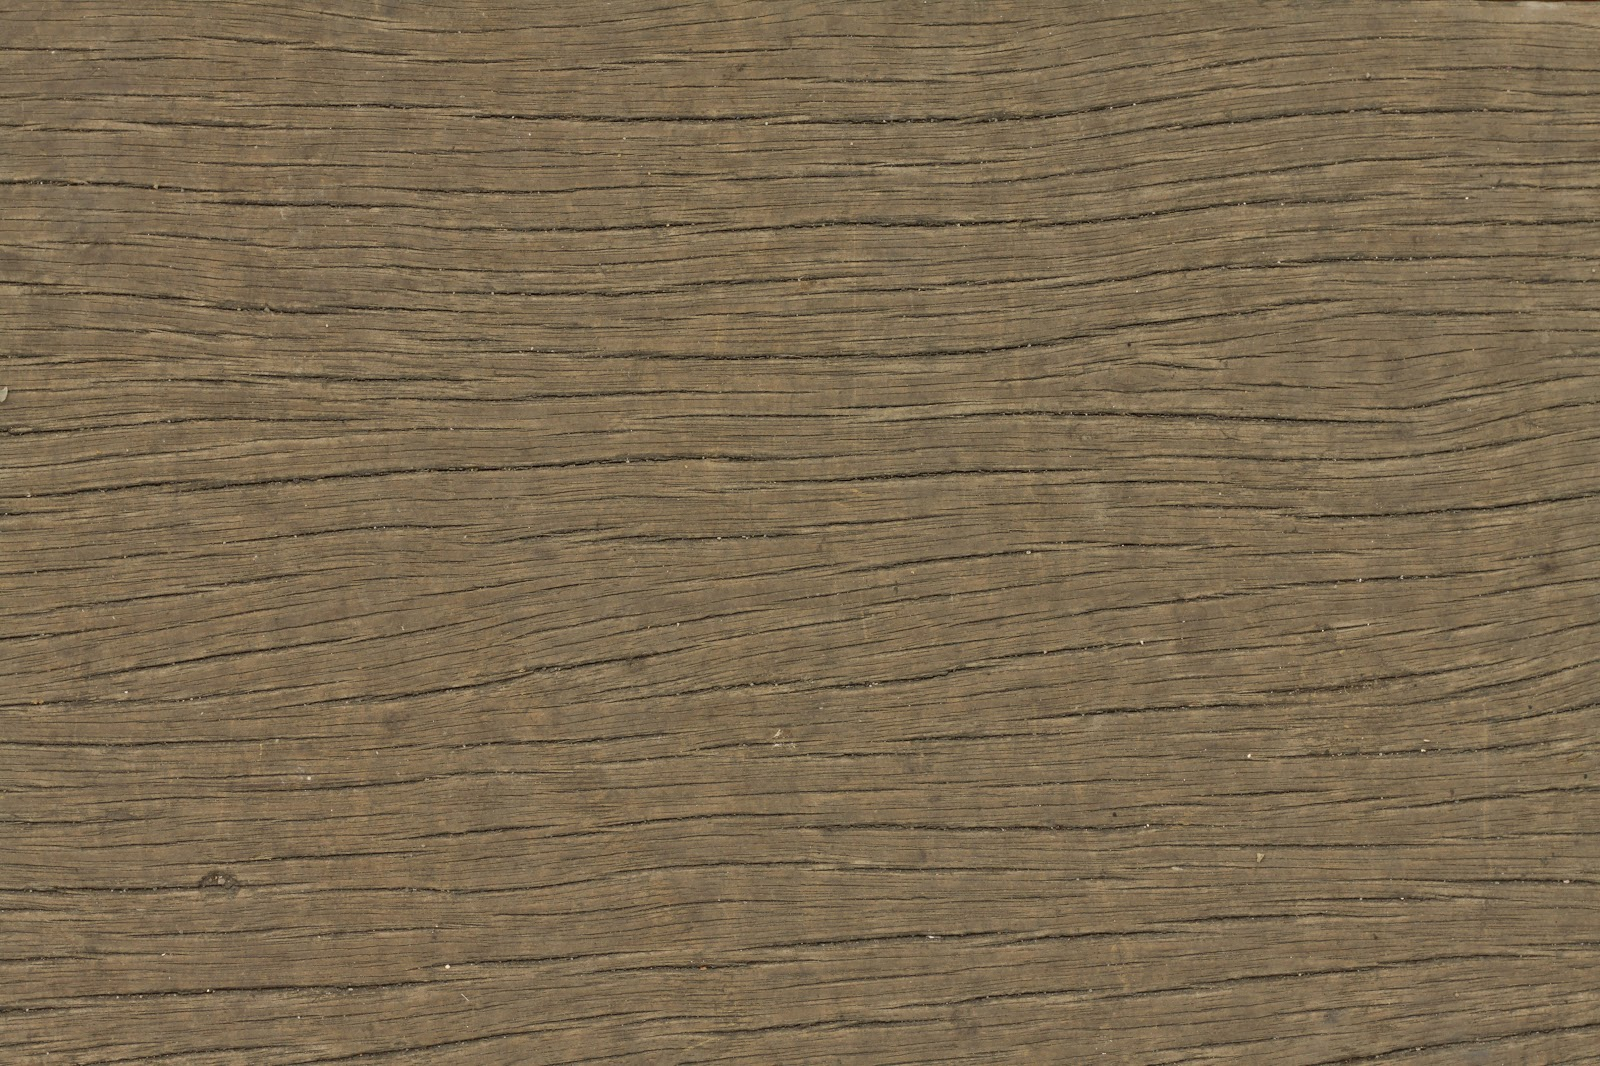 Wood dry cracked bench plank tree bark texture ver 18